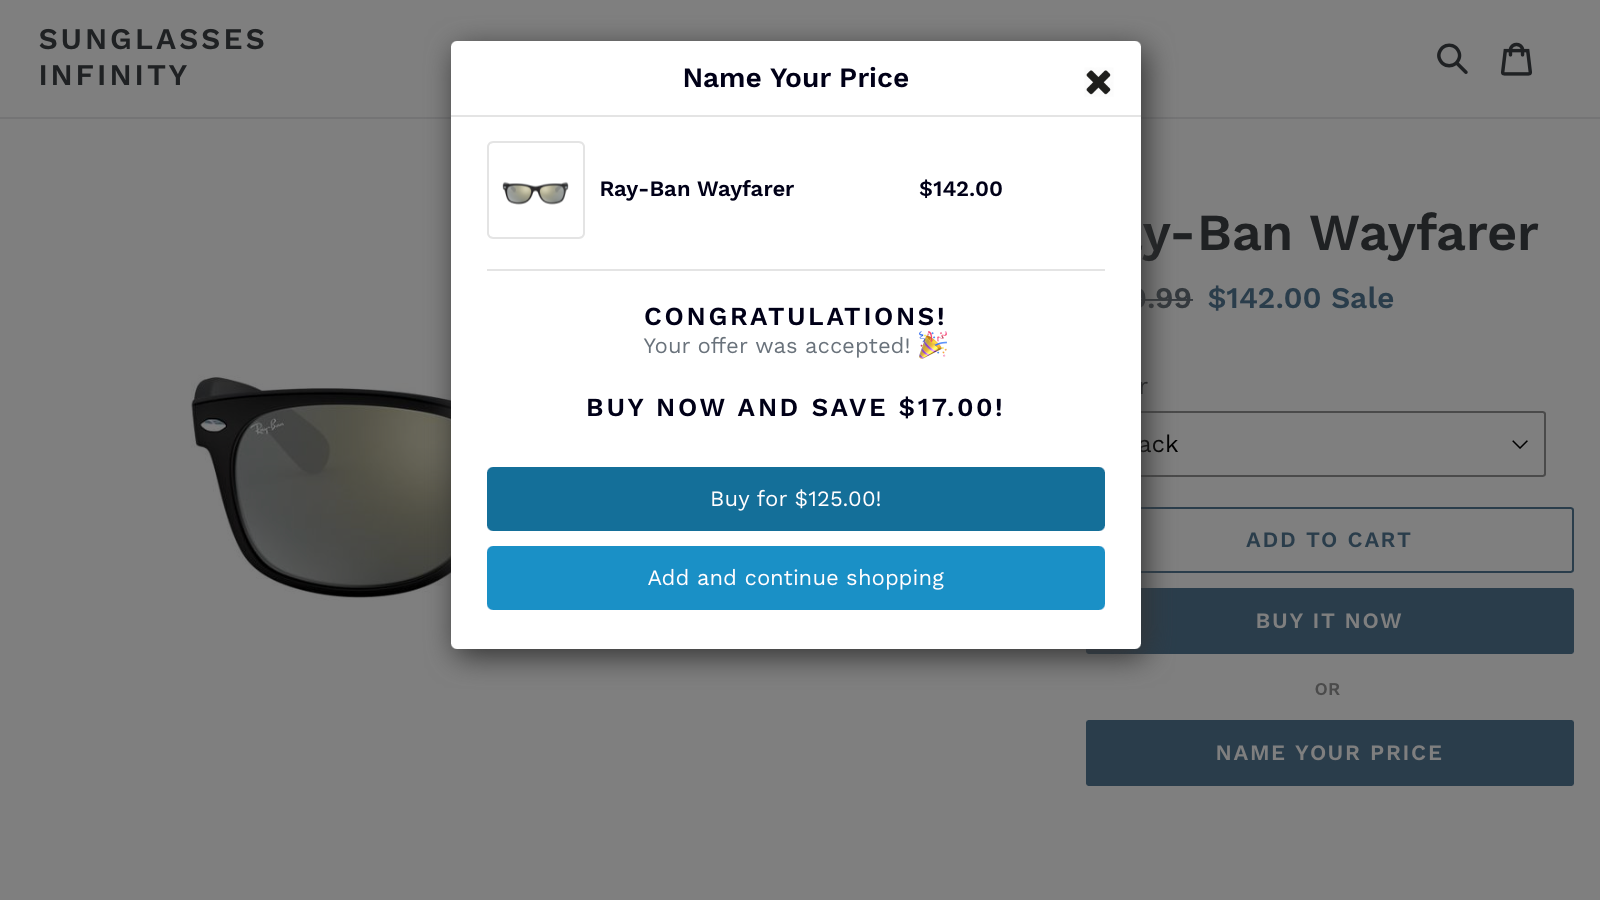 An offer within your price range is automatically accepted